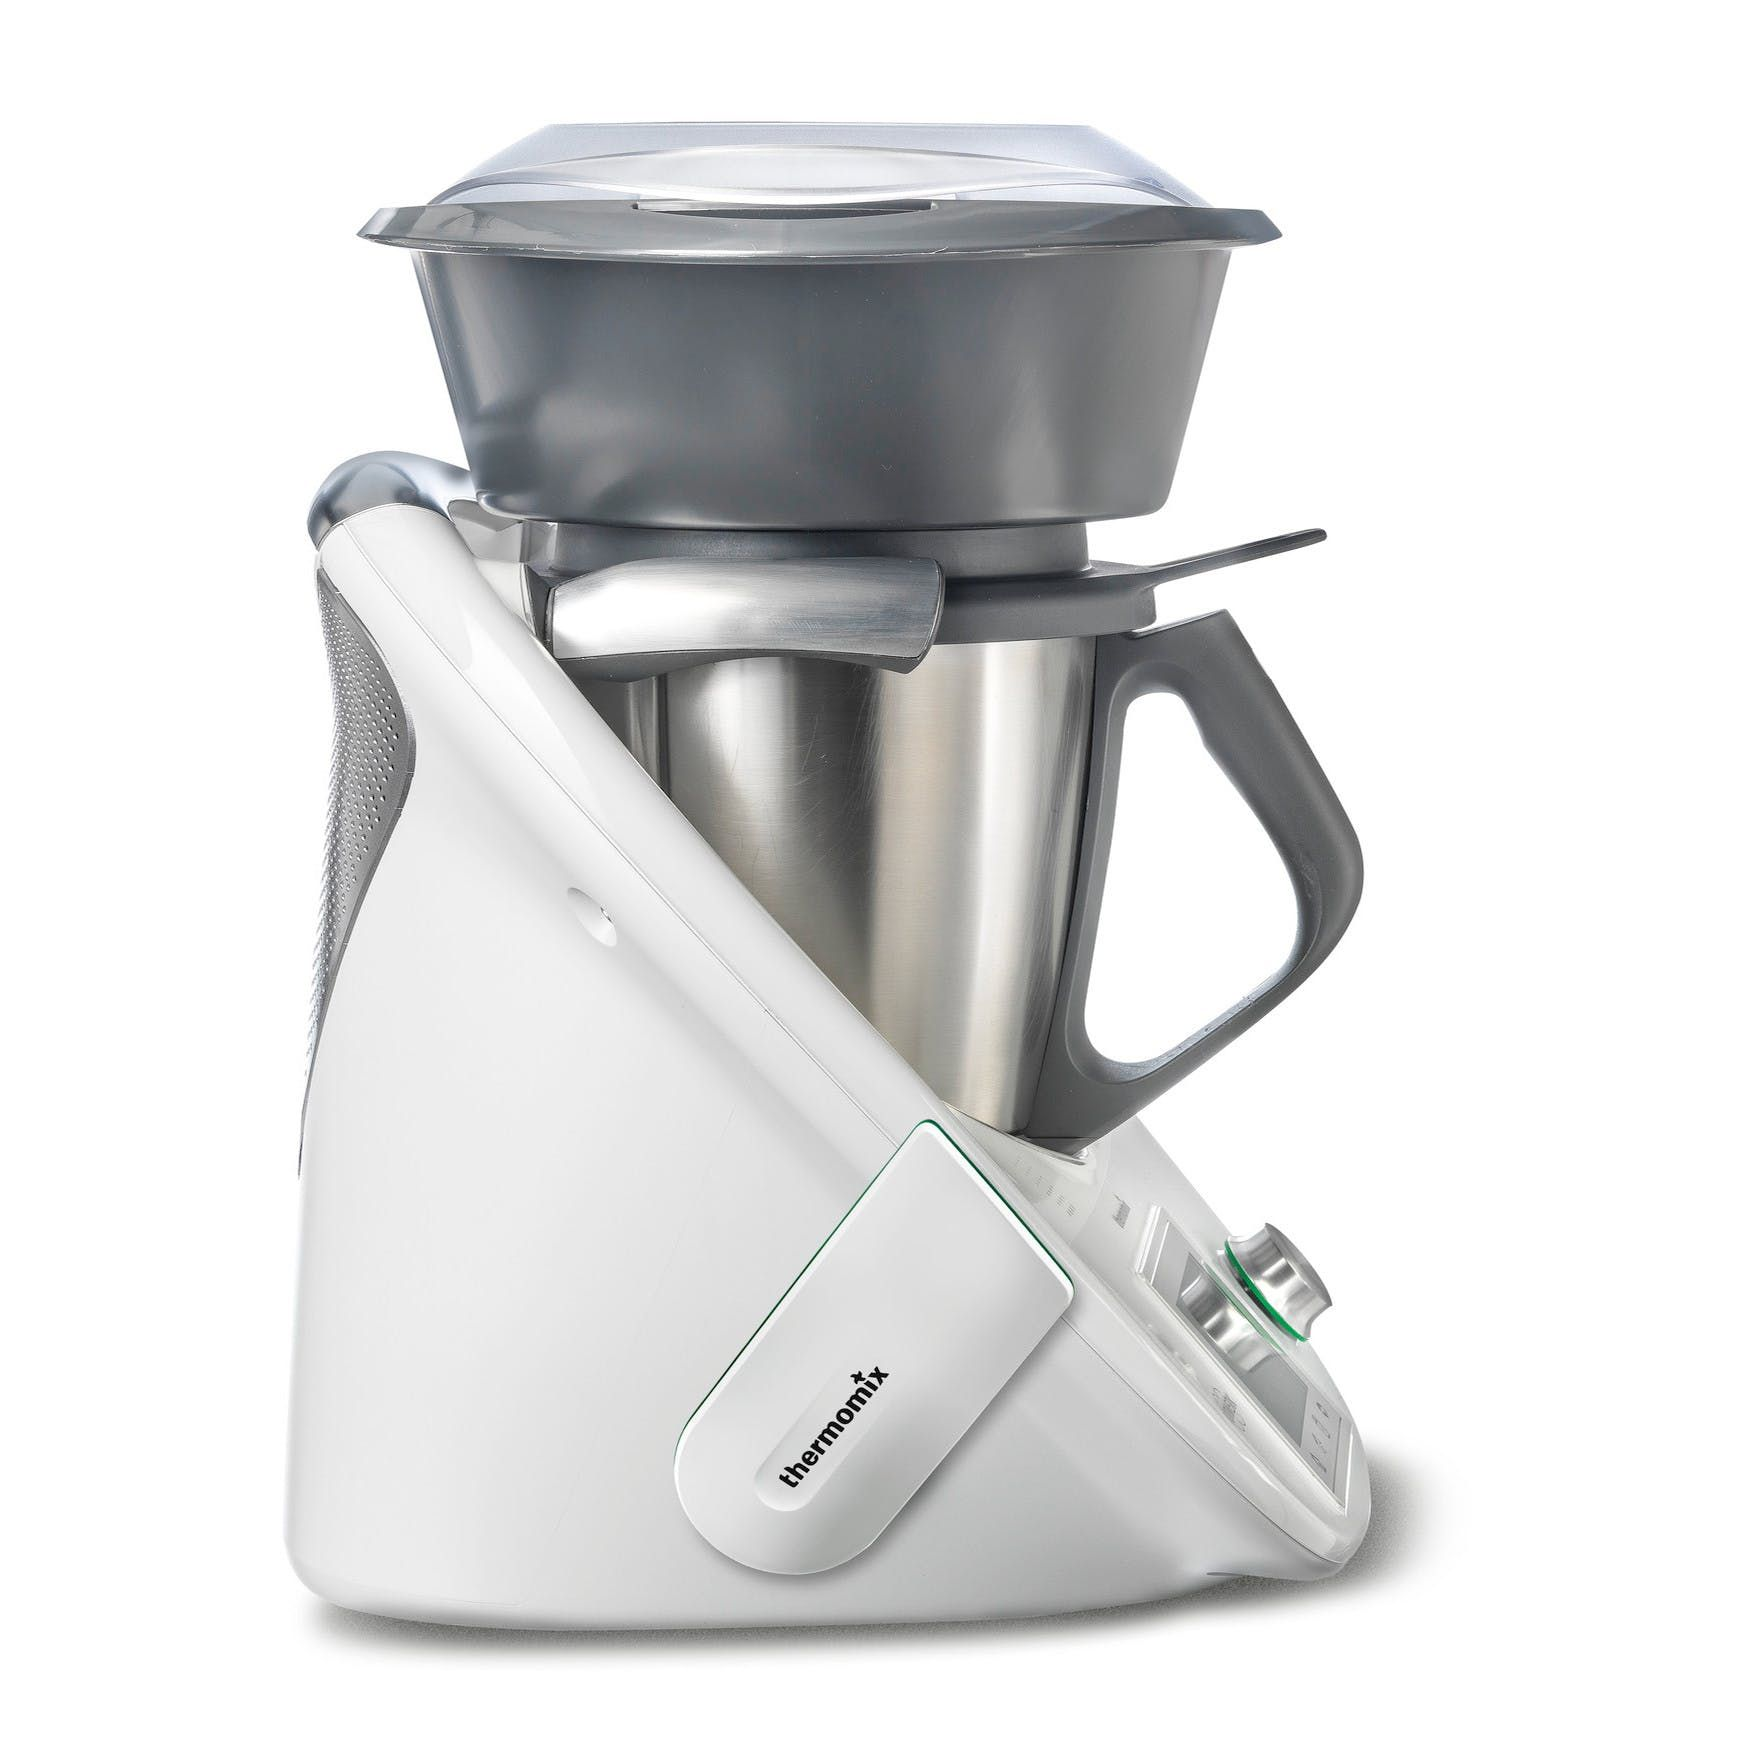 The Thermomix Will Be Your Next Kitchen Appliance Obsession ...